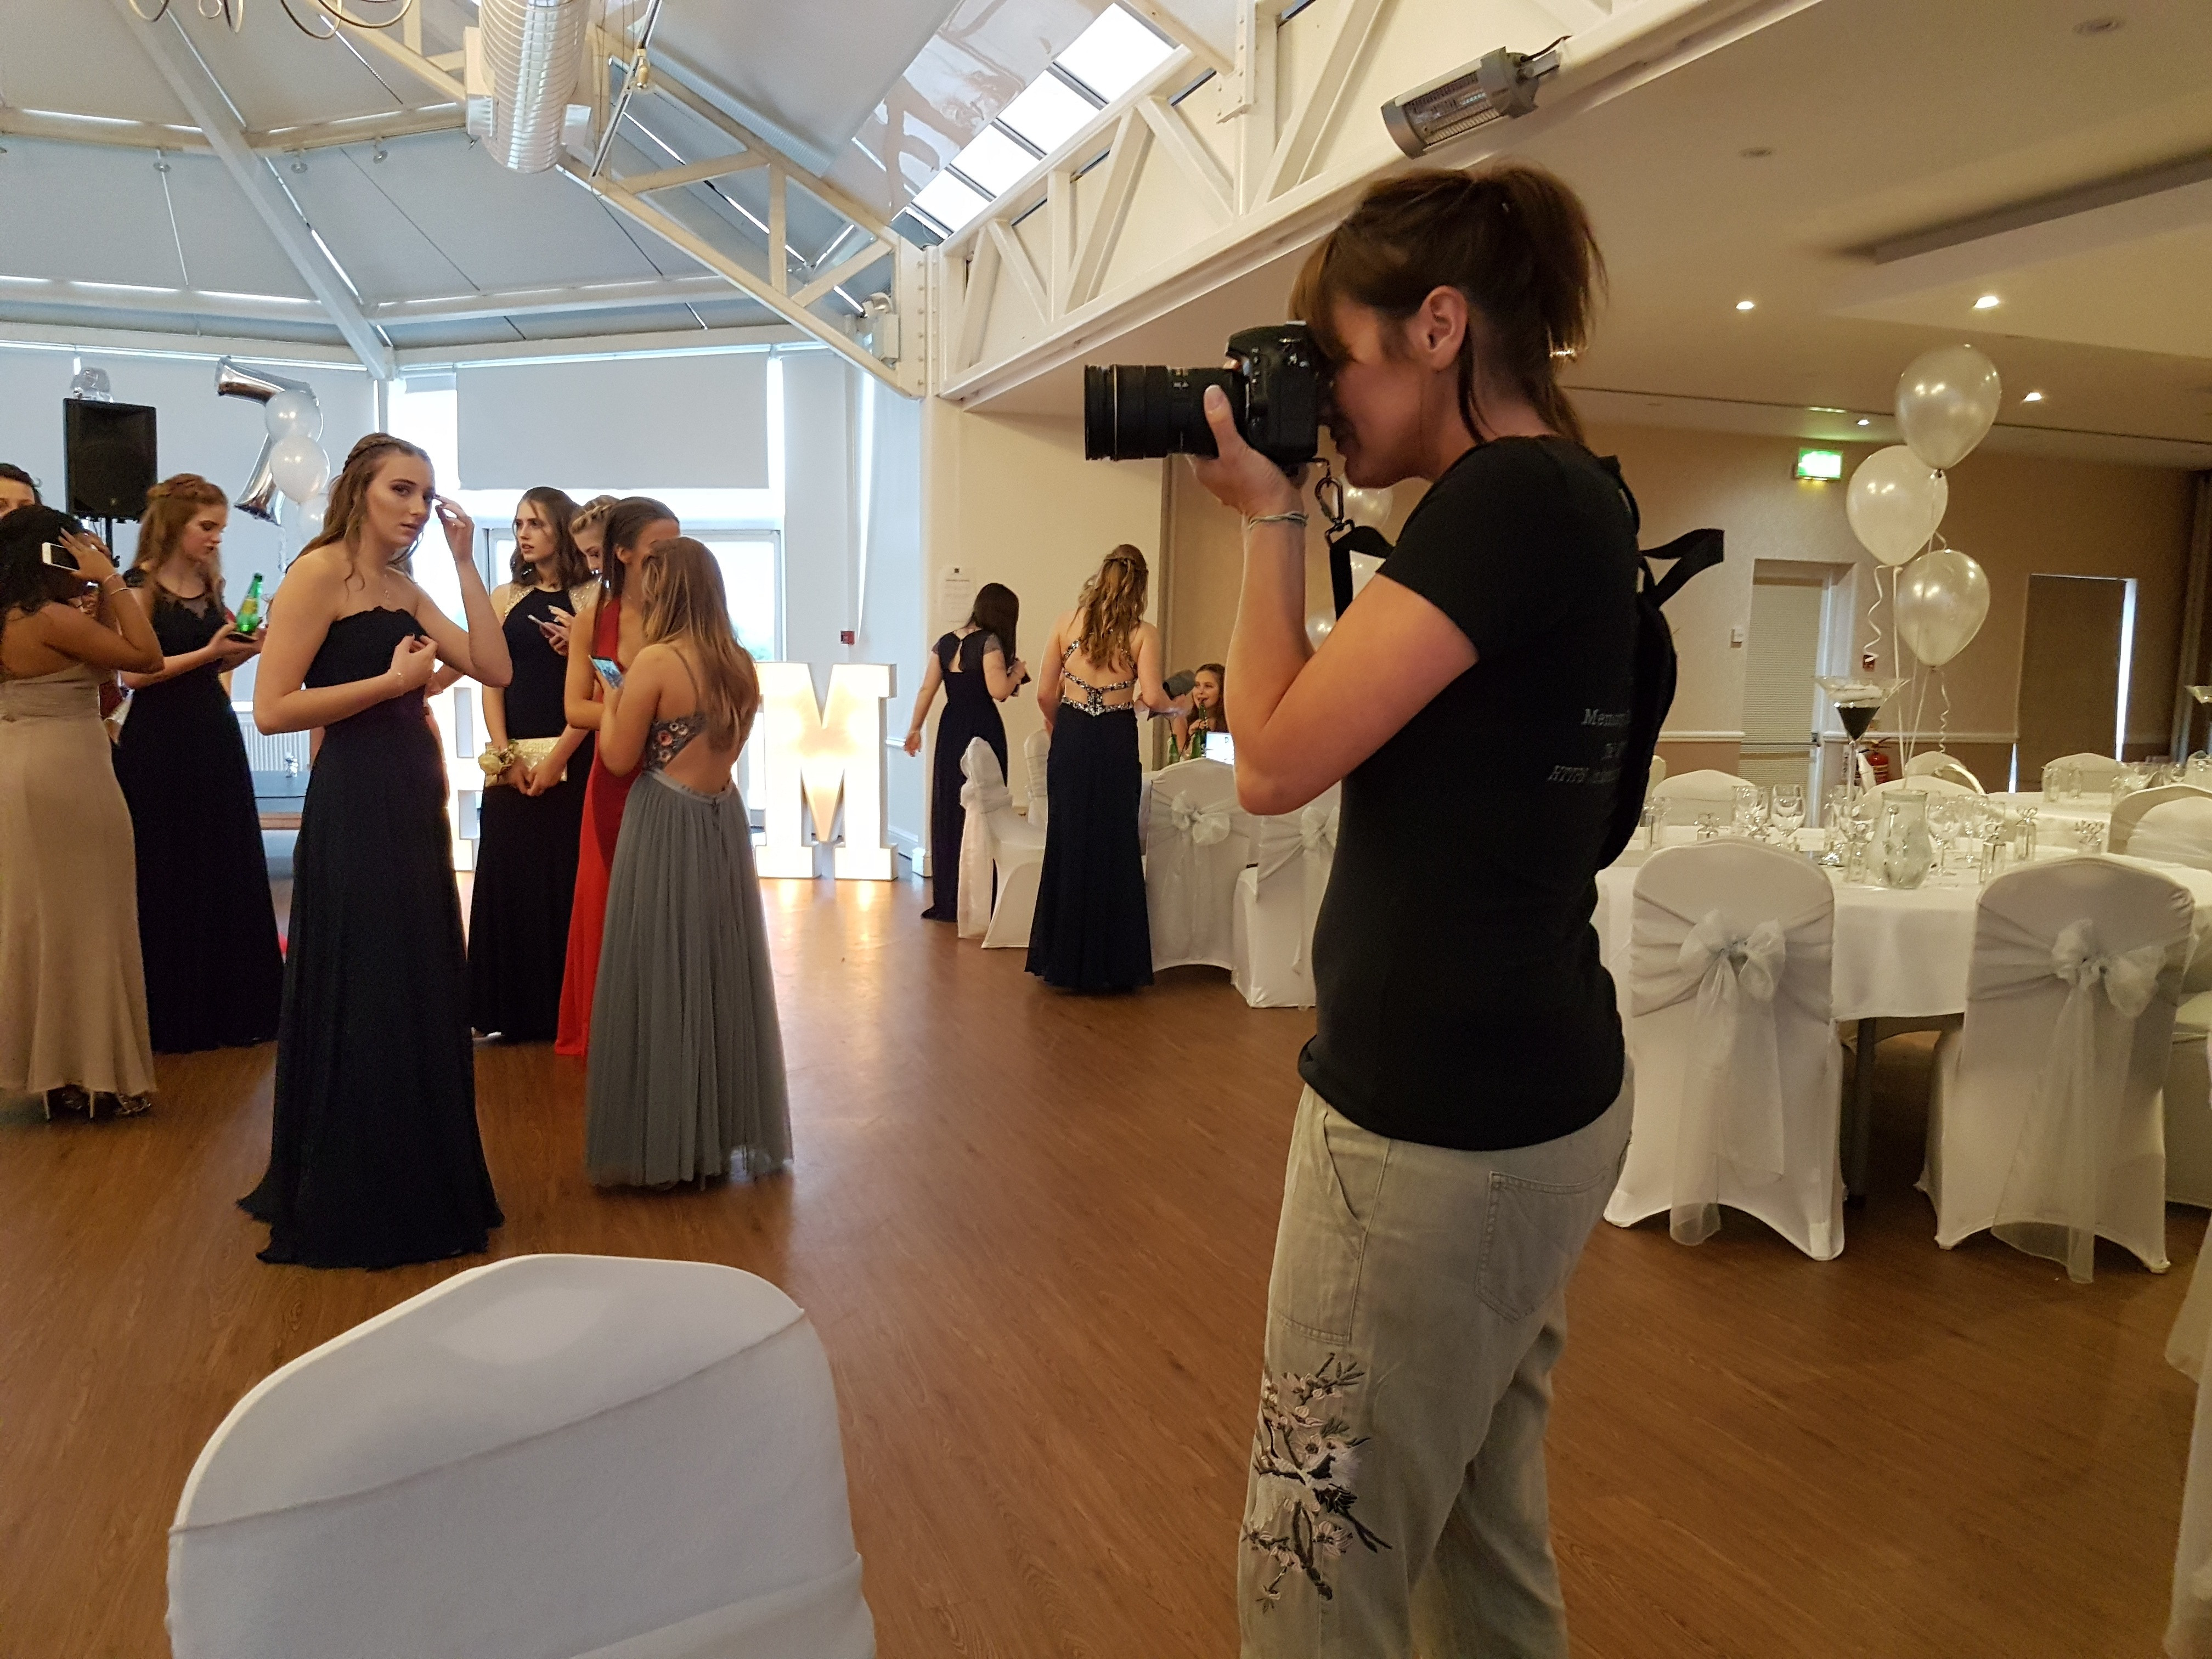 Evening photography perfect for any occasion